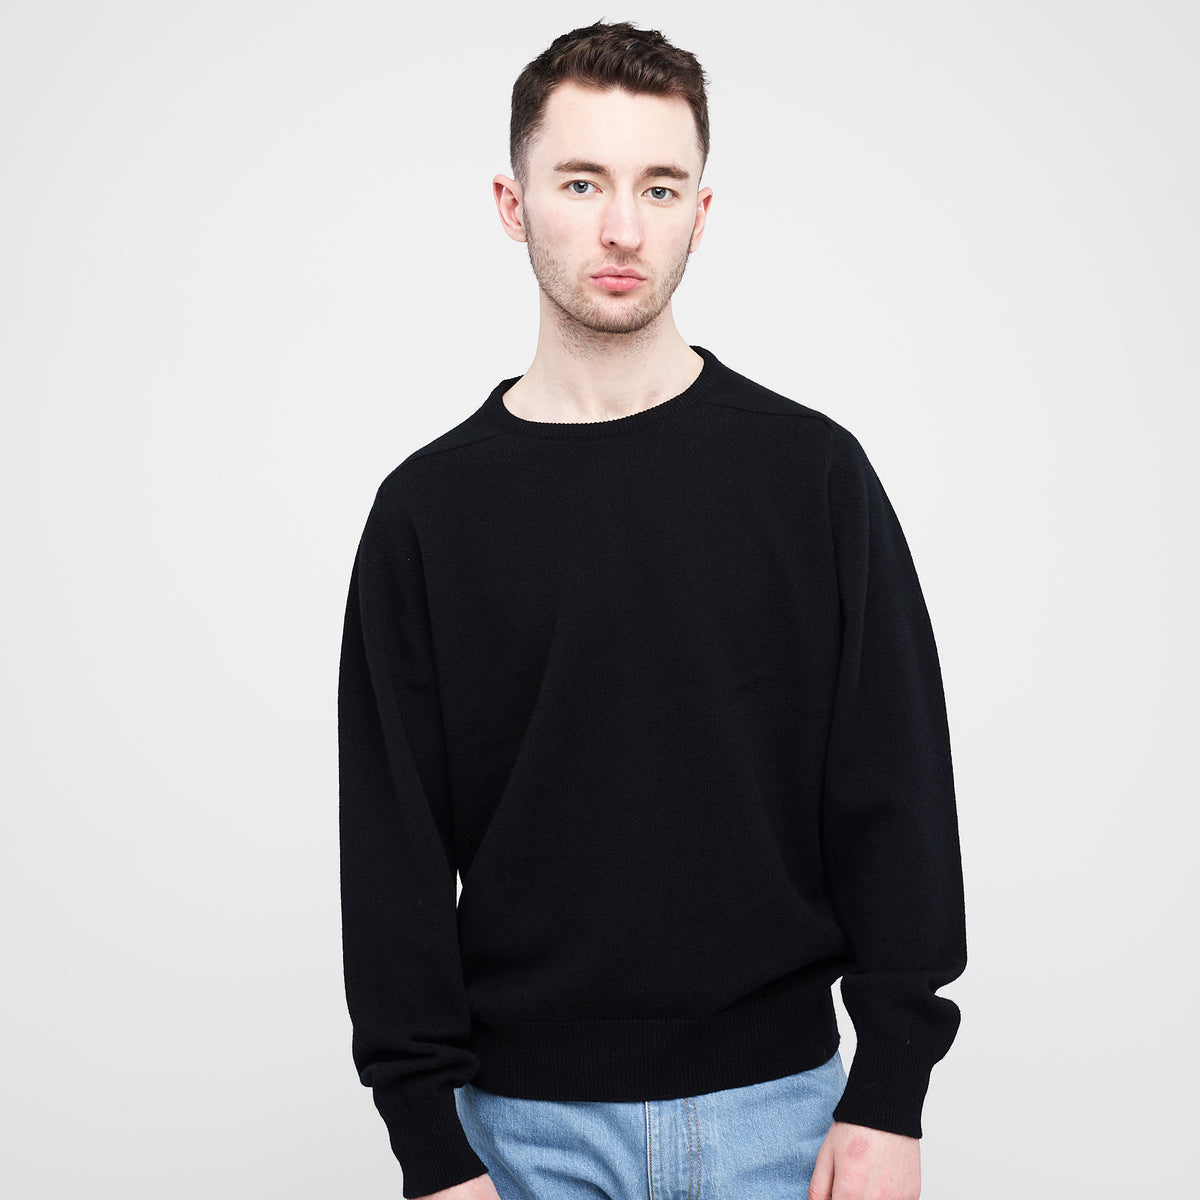 Lambswool Crew Neck Jumper Black - Community Clothing